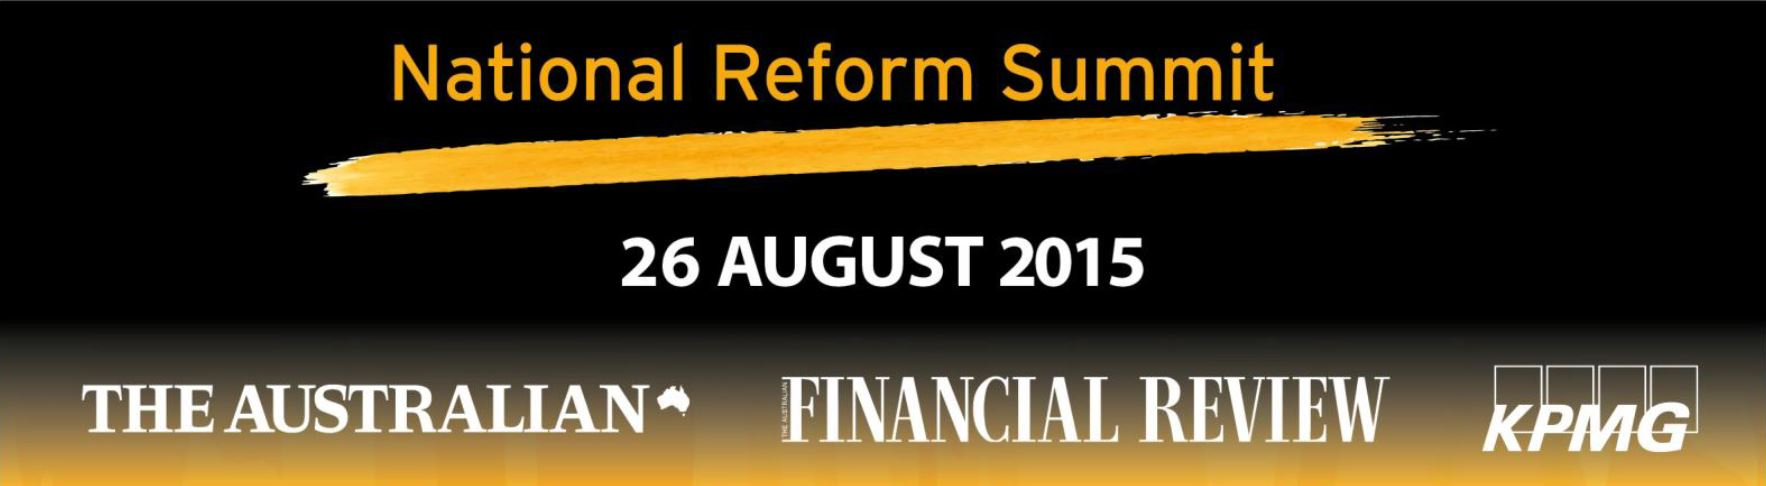 National Reform Summit 2015 Logos